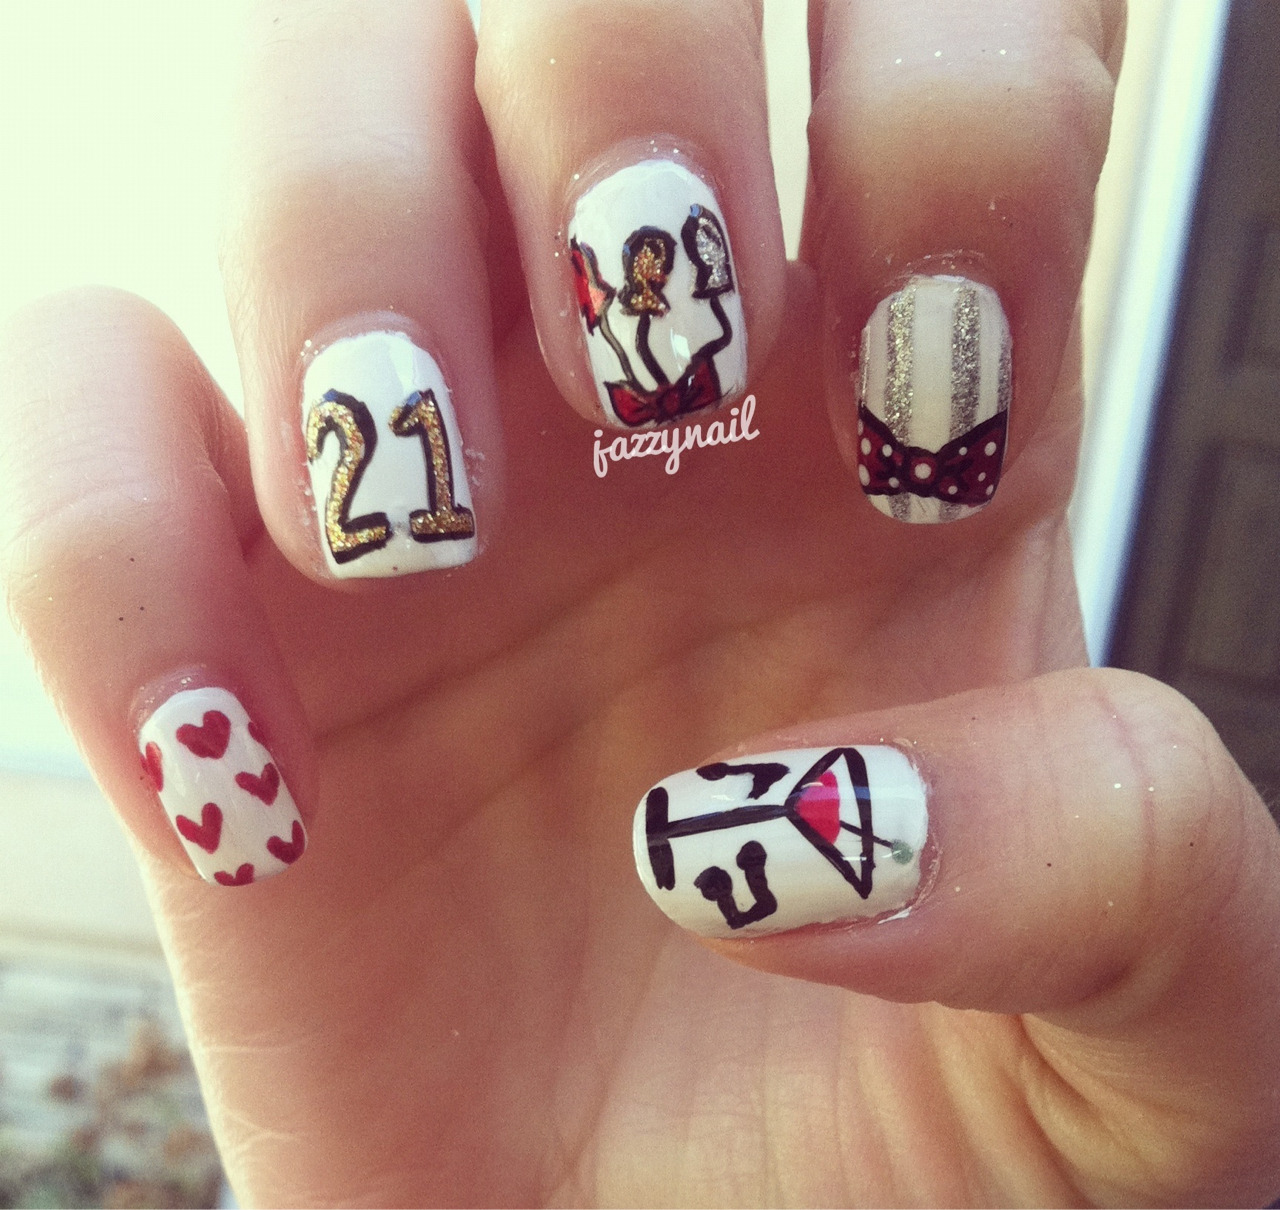 Nail Designs For Birthday - Nail Designs For Birthday All Nail Arts Ideas Collection